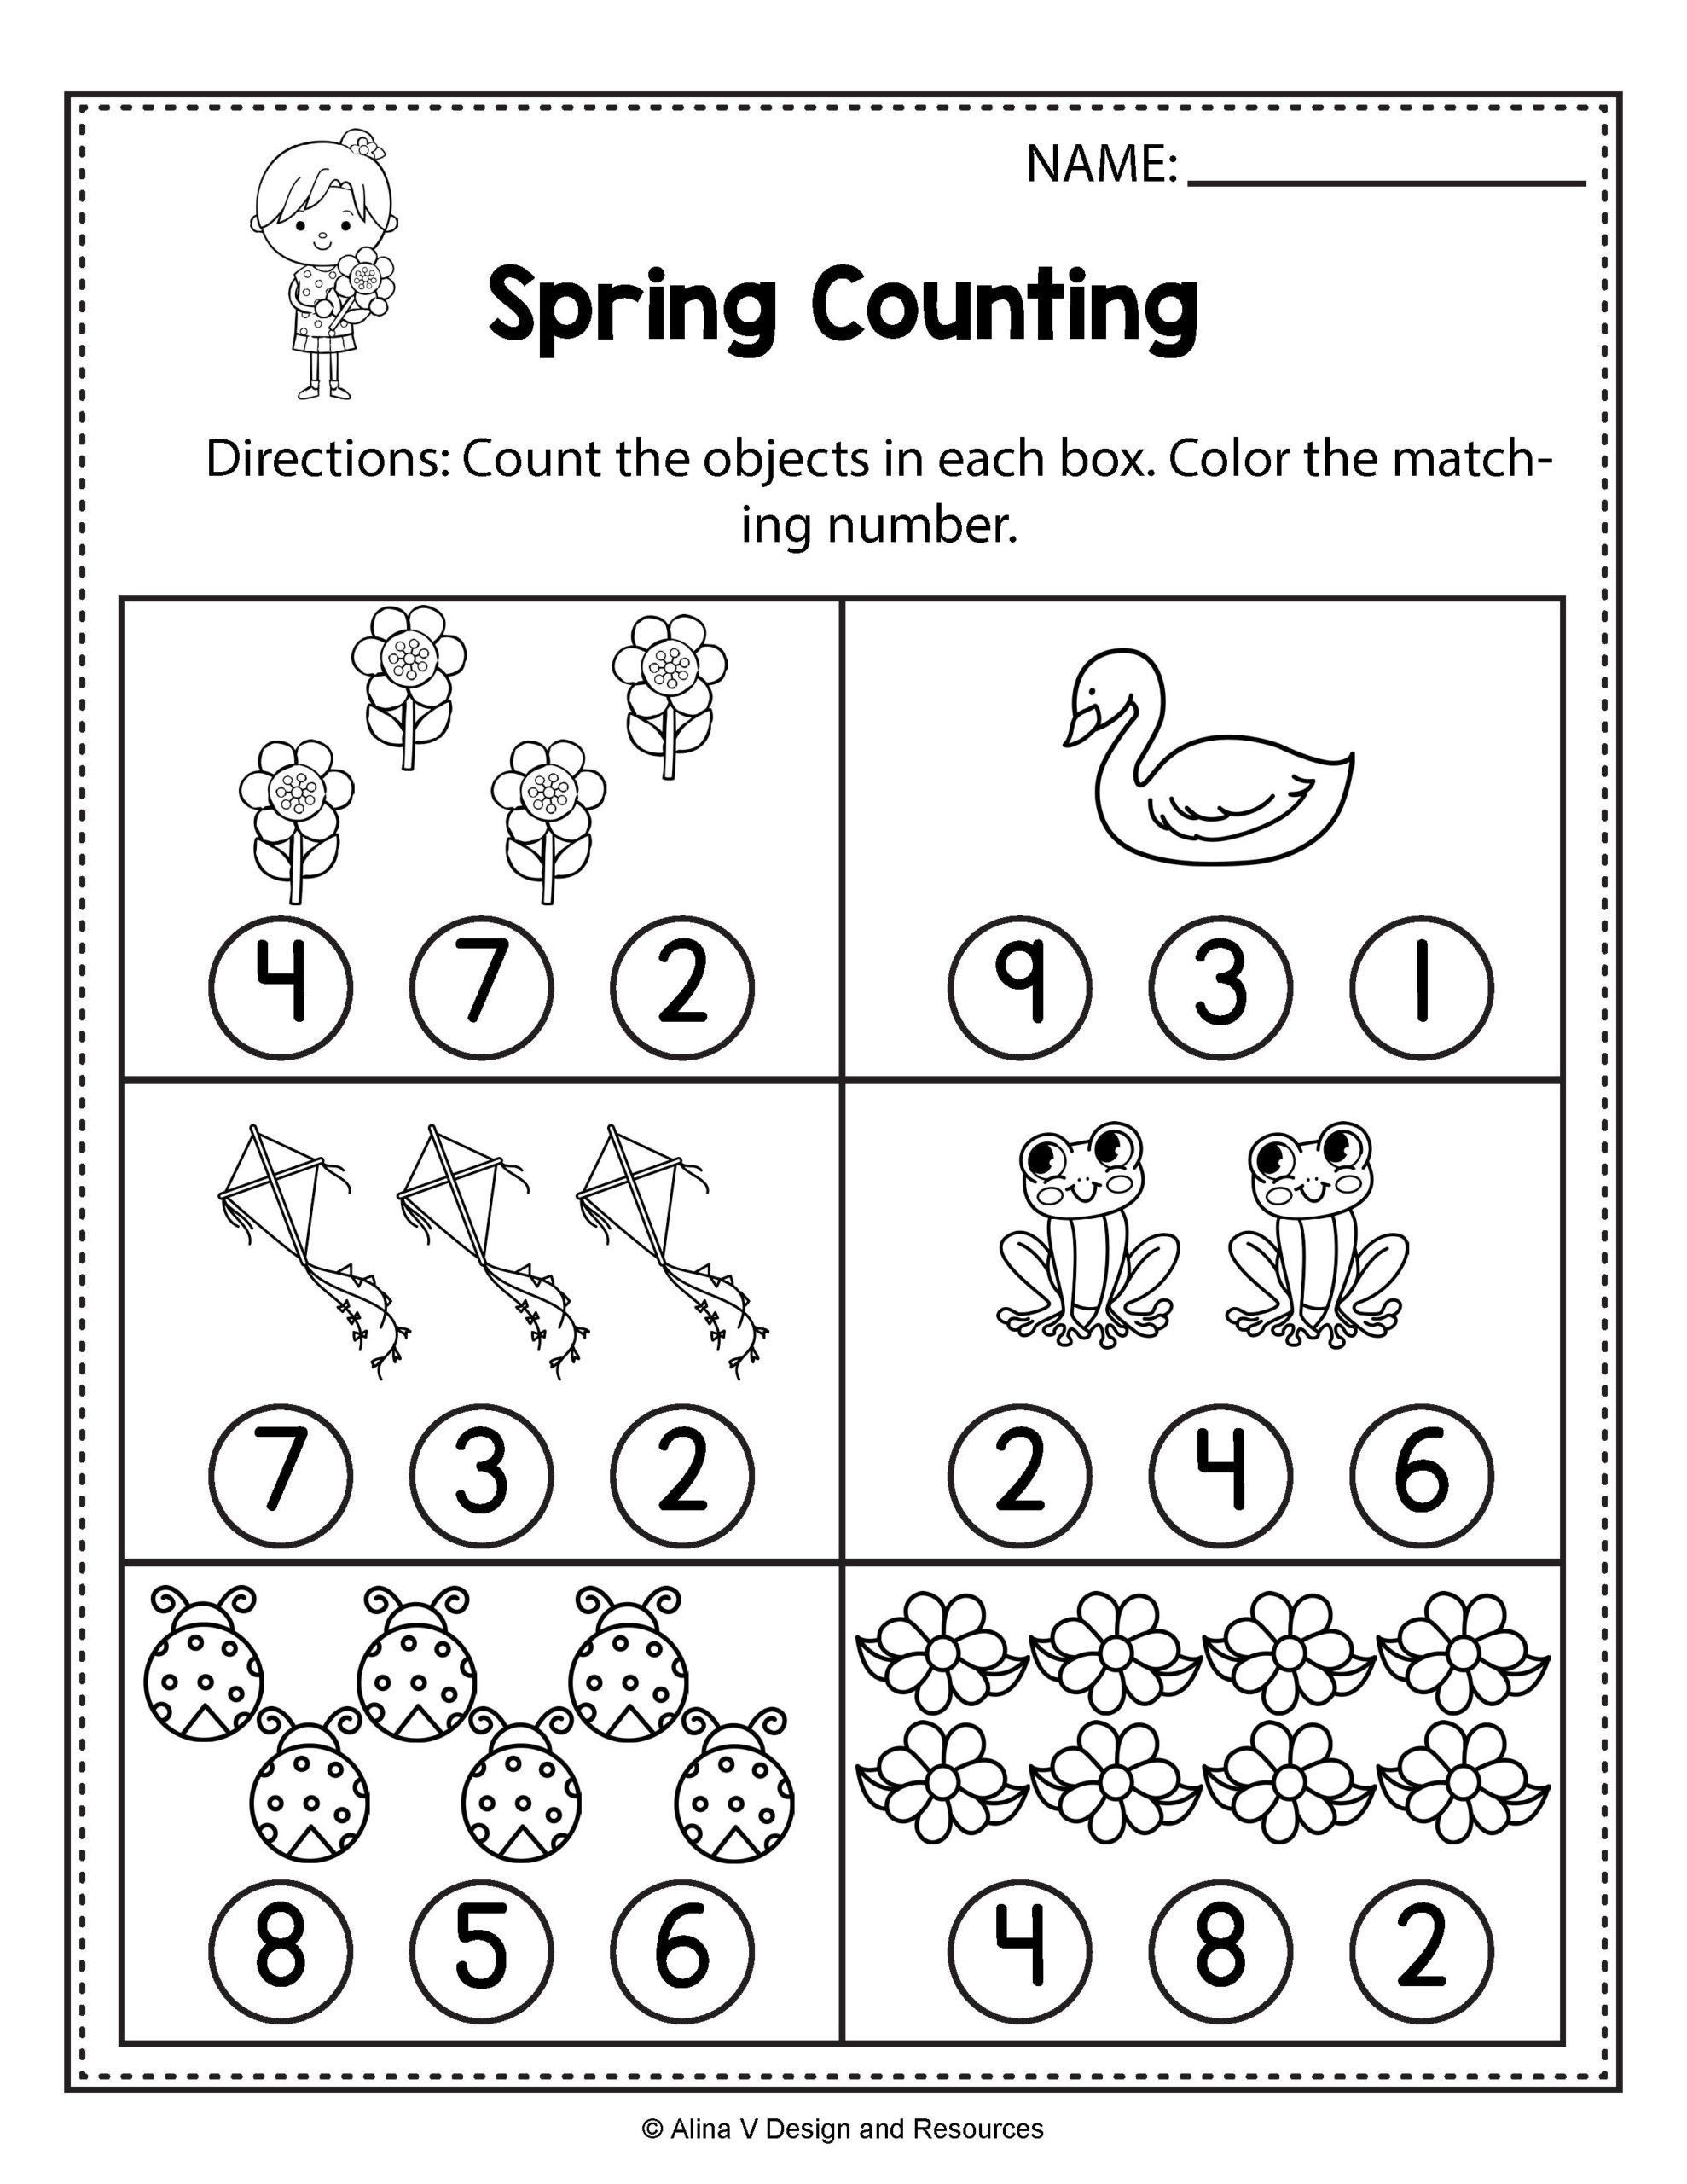 Weather Worksheets for 3rd Grade Spring Weather Worksheets for Preschool Printable and Beach